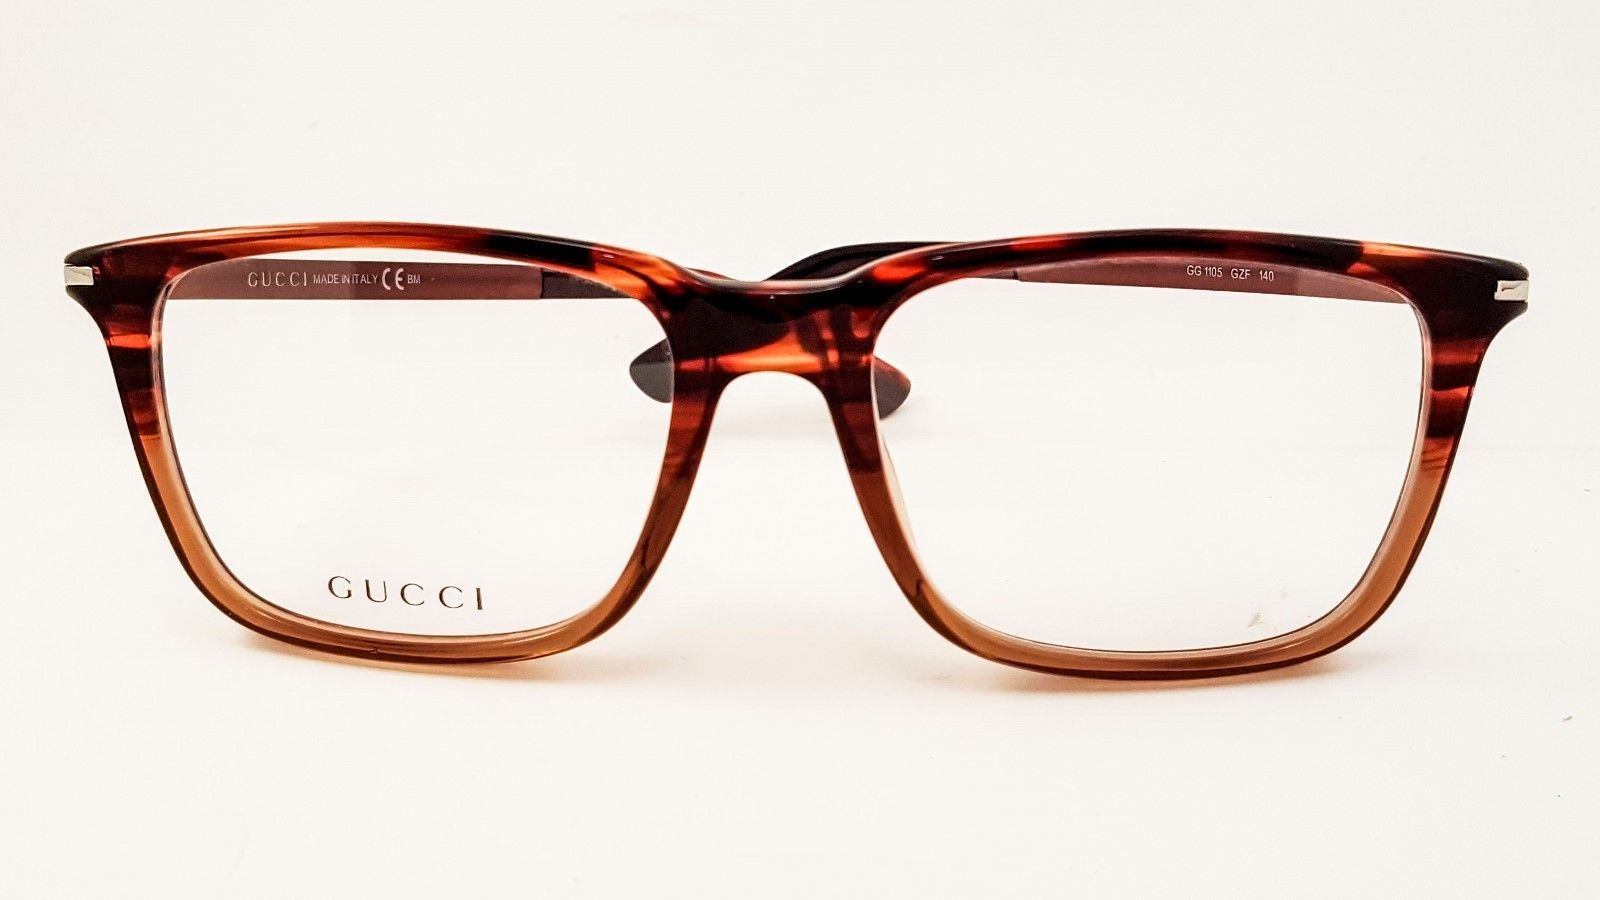 Pin by aam.com.pk on Gucci Frames   Pinterest   Gucci, Gucci frames ... 6132384ee759